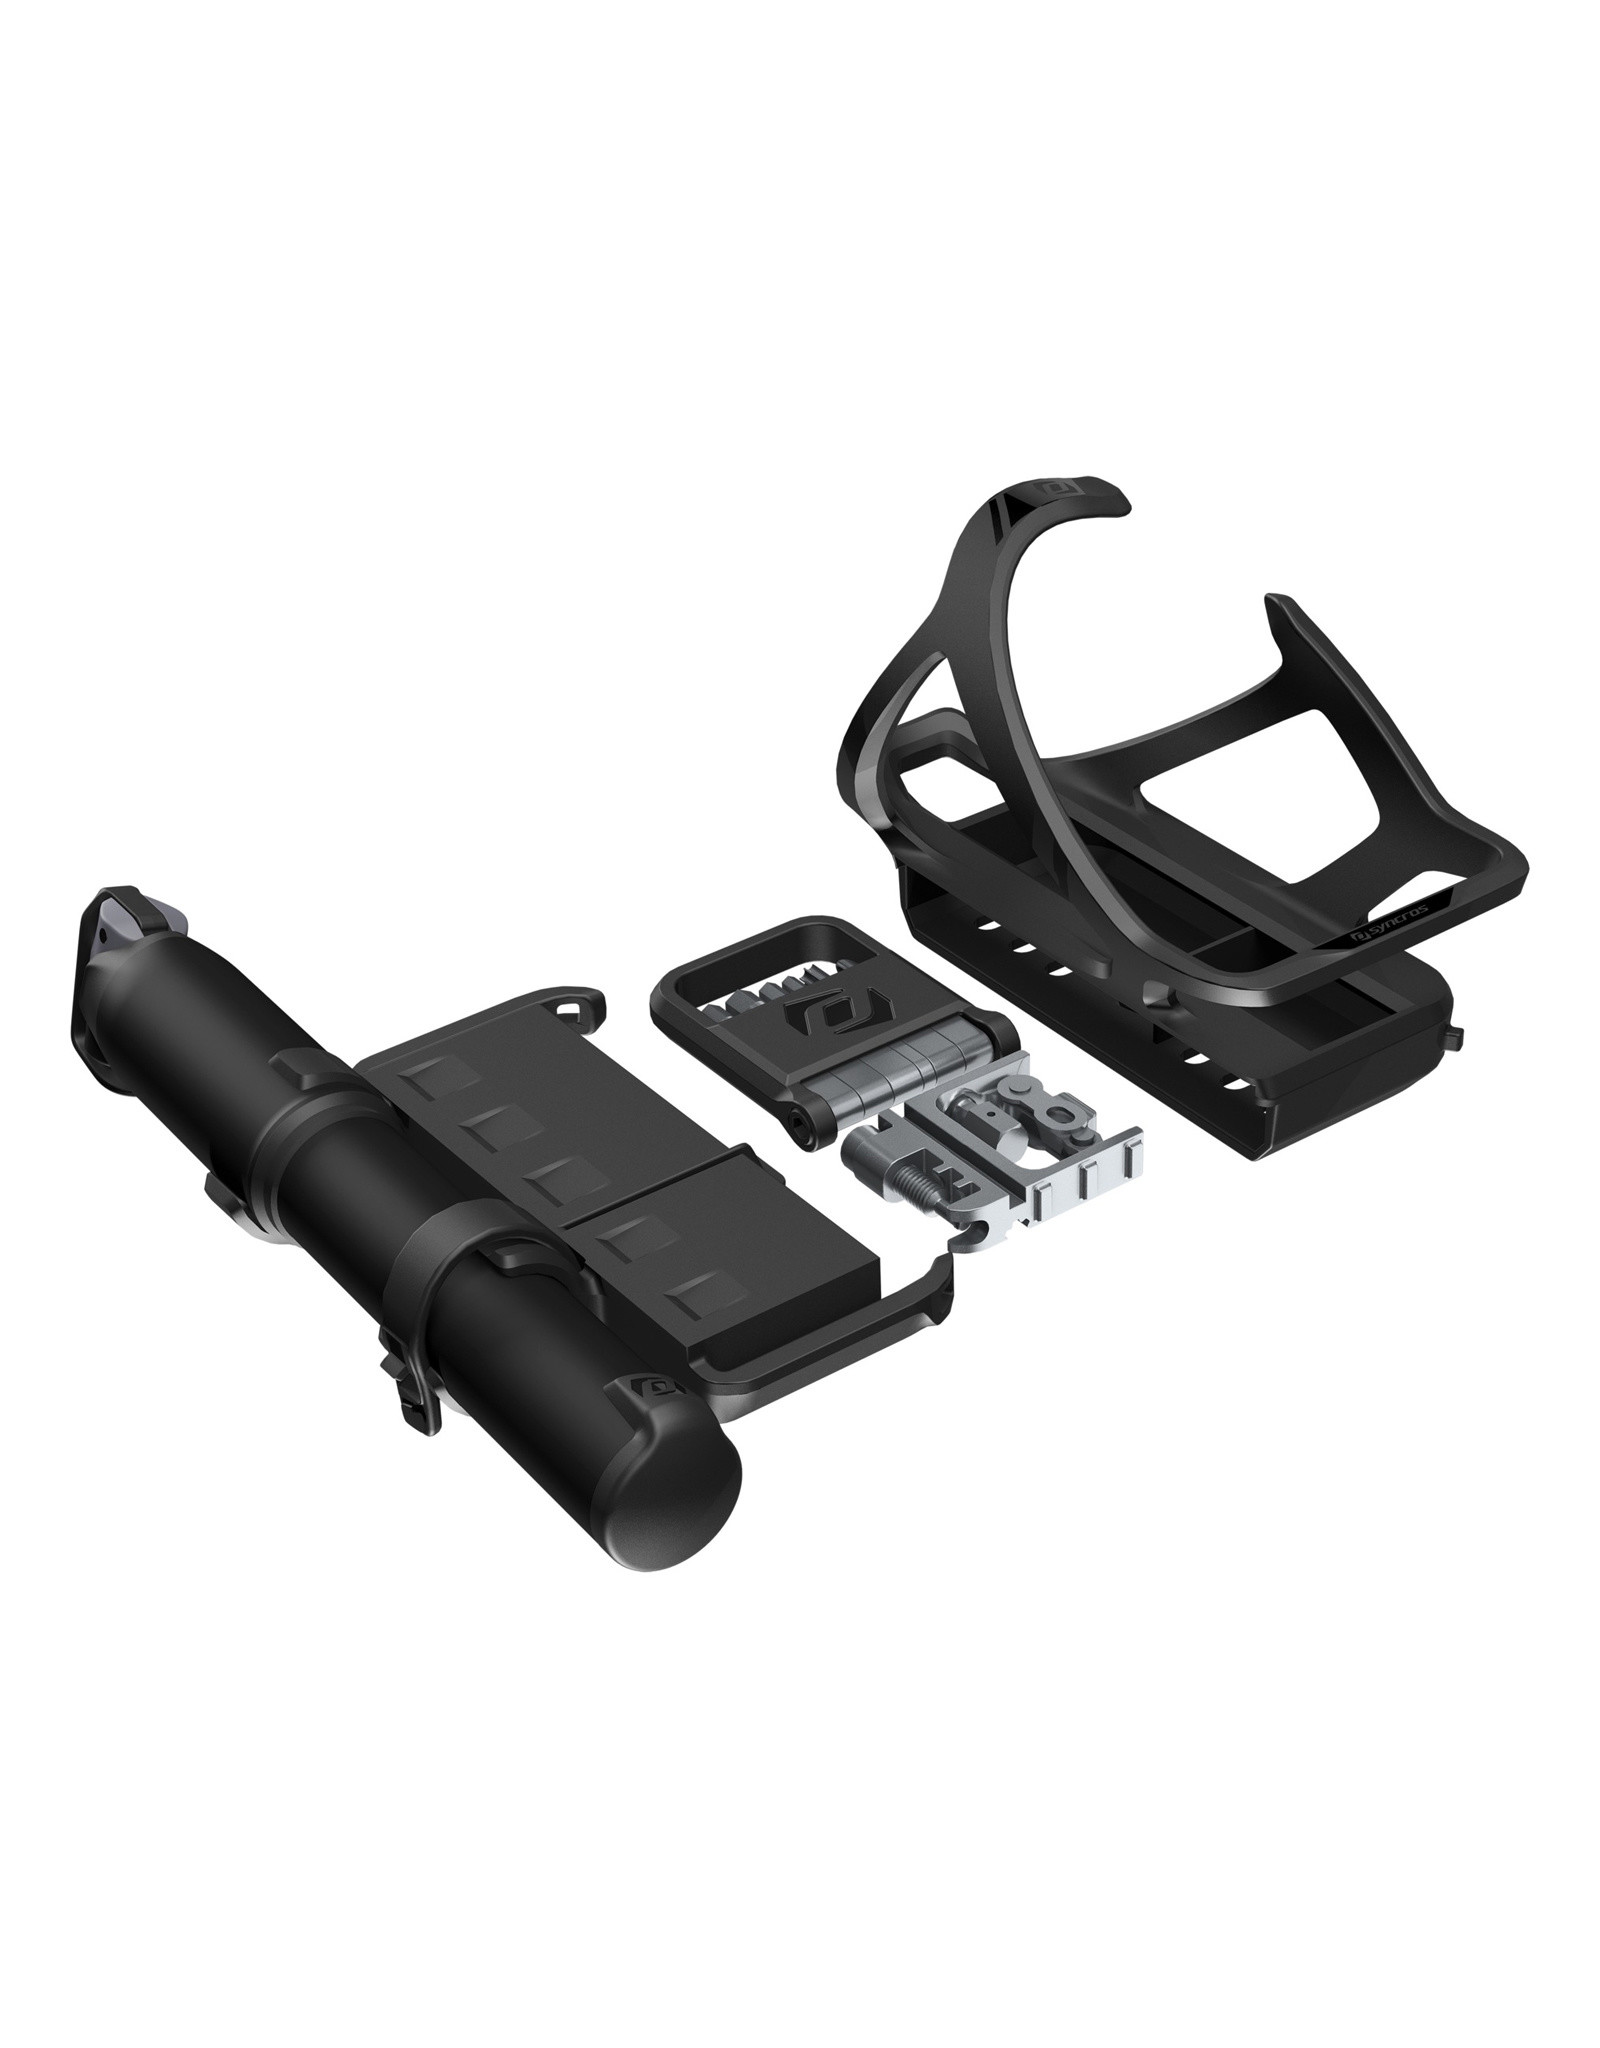 Syncros Syncros BC MB Tailor cage R. Mini HV1.5